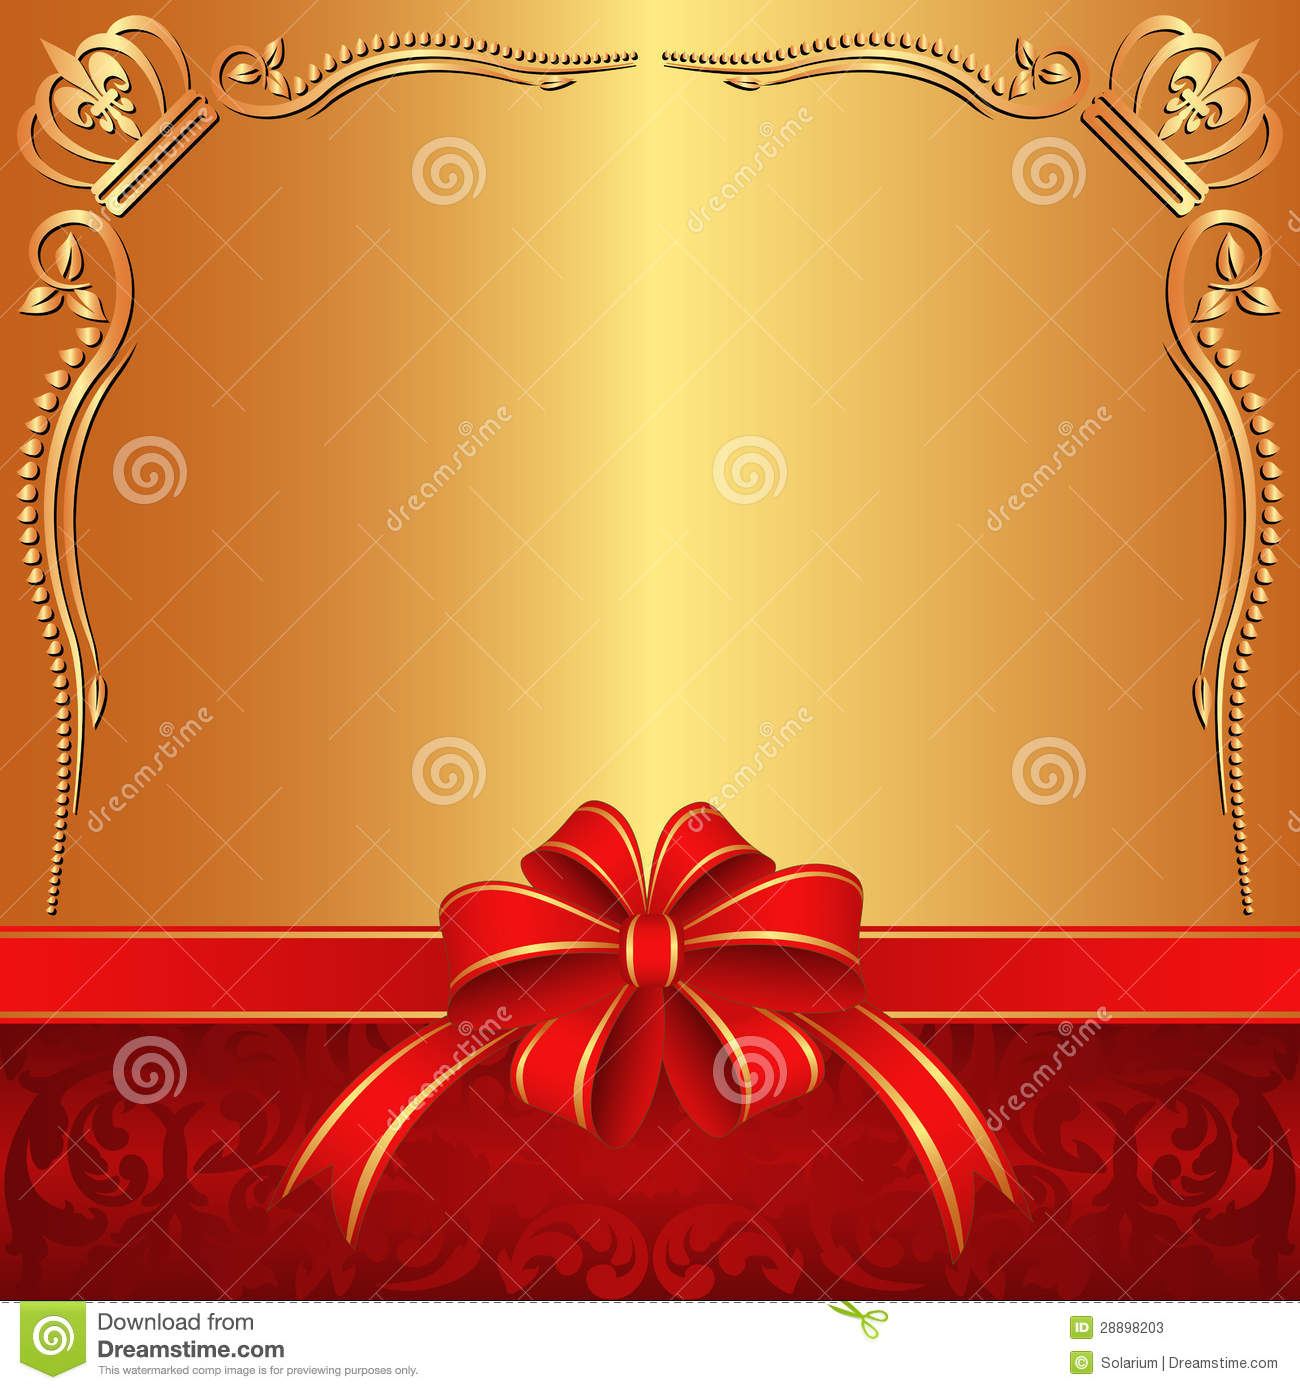 Decorative golden background with ribbon and bow.